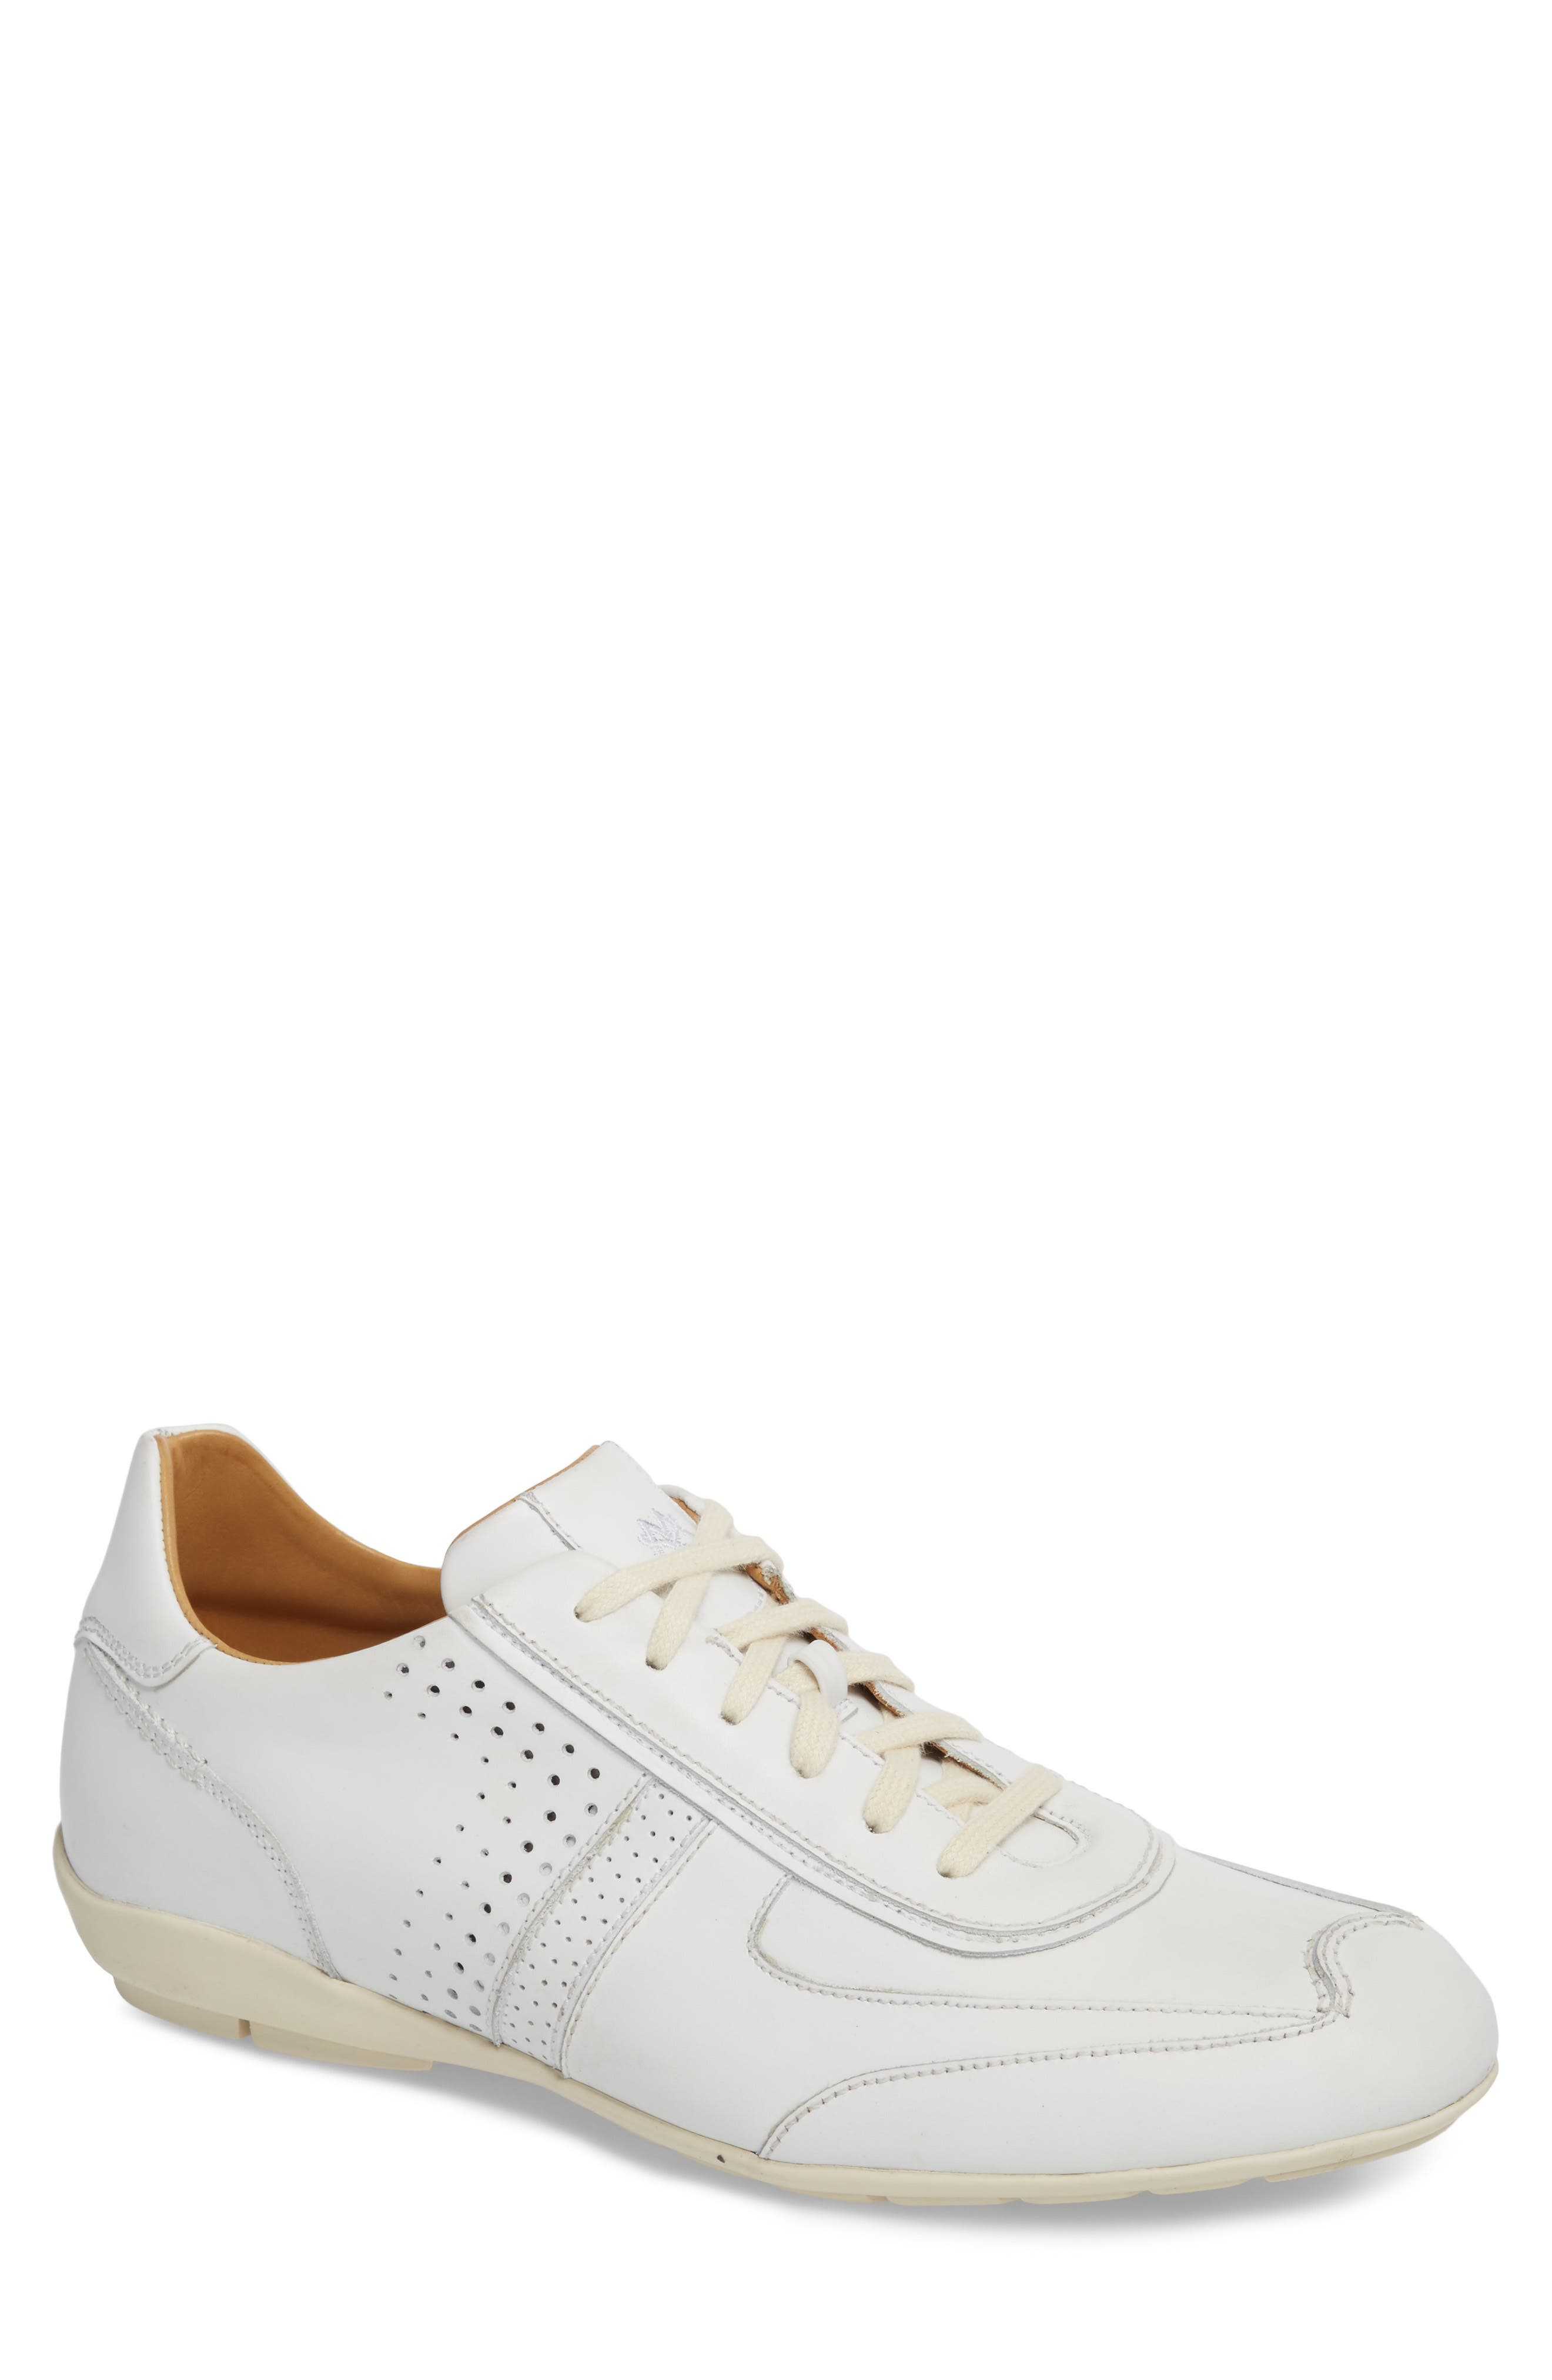 Lozano II Low Top Sneaker,                             Main thumbnail 1, color,                             White Leather